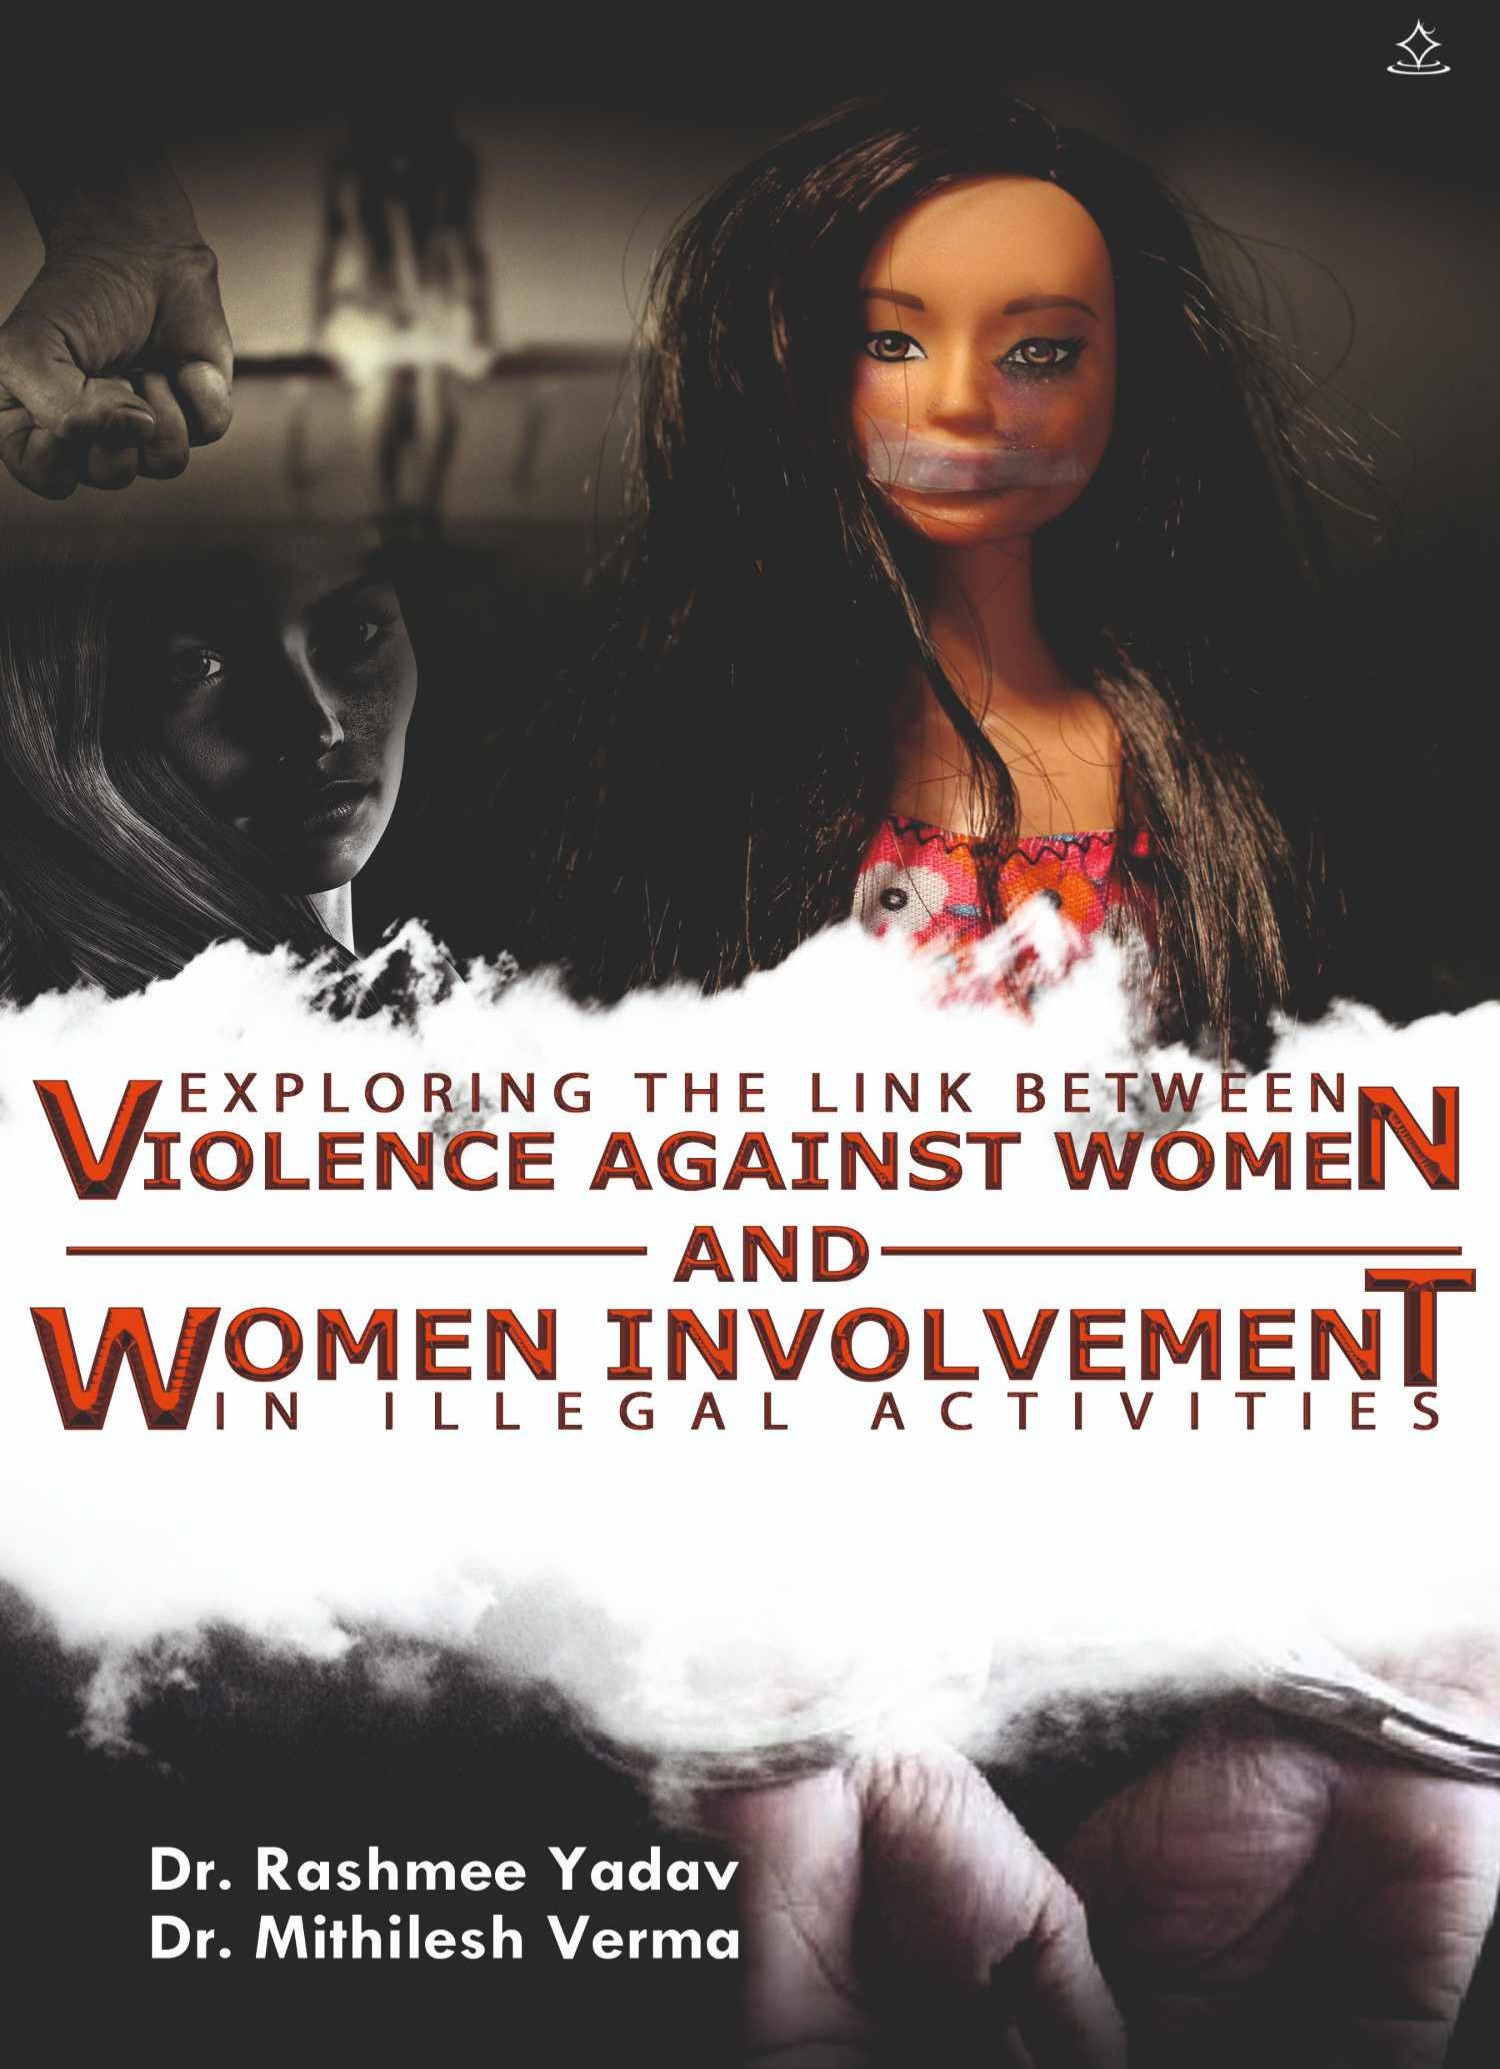 Exploring the Link between Violence against Women and Women Involvement in Illegal Activities